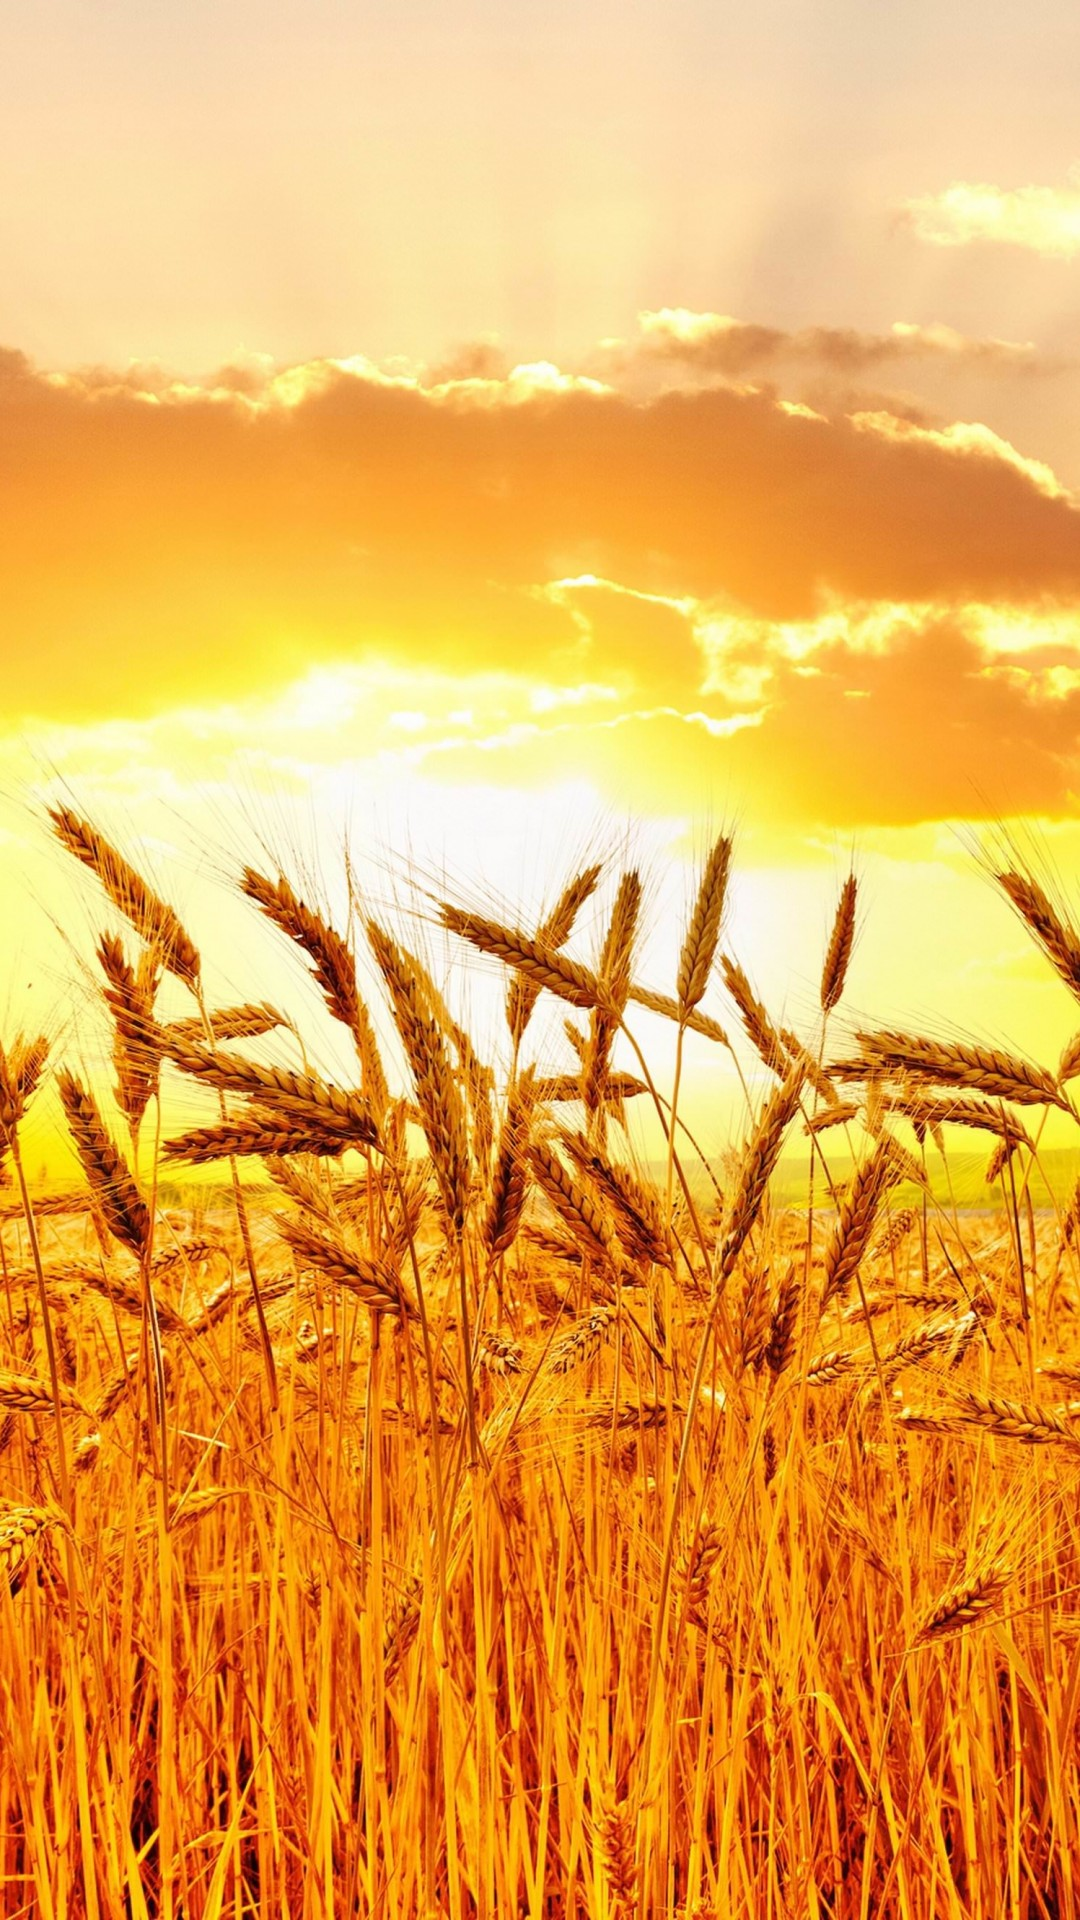 Golden Wheat Field At Sunset Wallpaper for SONY Xperia Z2